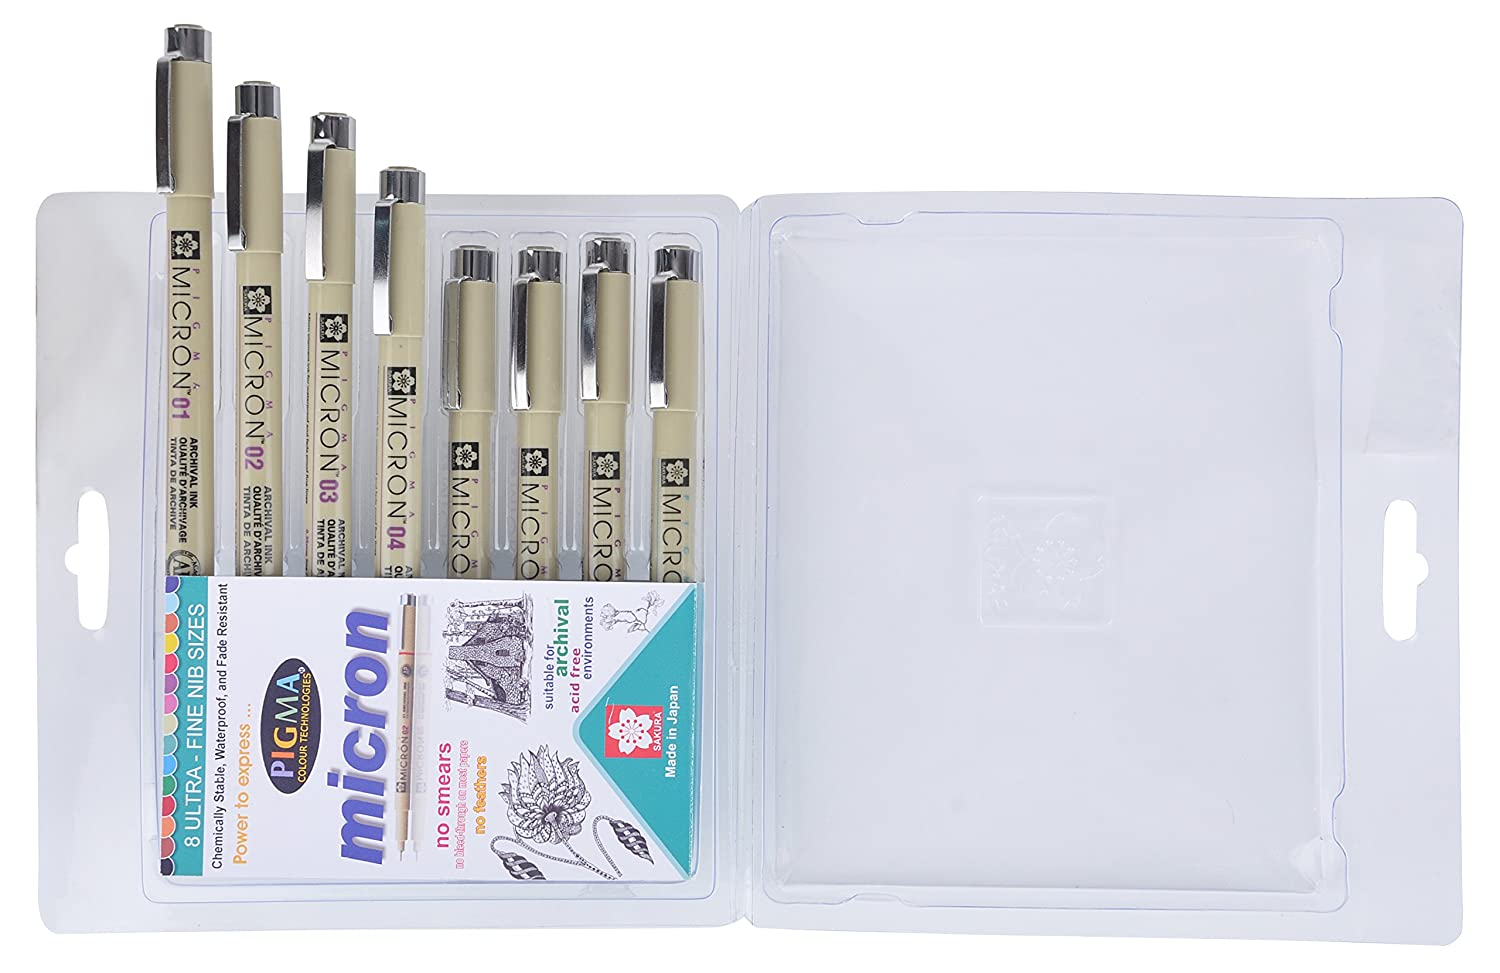 Sakura Pigma Micron Fine Line Pens - Set Of 8 Assorted Nibs In Black Colour (003,005,01,02,03,05,08)